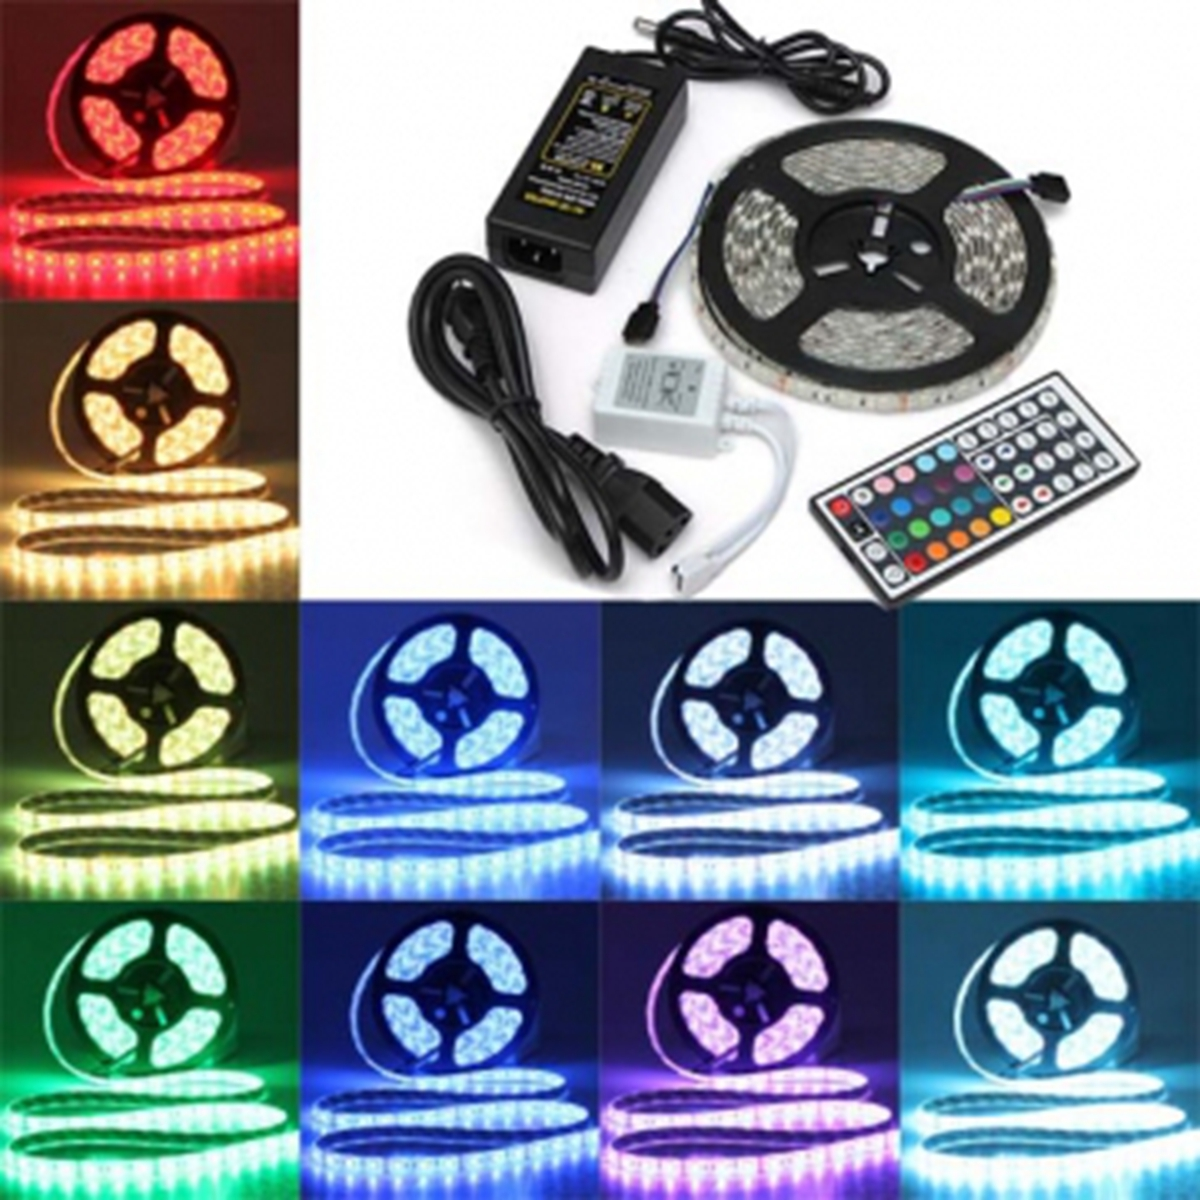 5M 5050 300 SMD IP65 Waterproof Flexible LED Strip Light and IR Remote Controller +12V 5A Power Adapter Kit Christmas Decoration замок двери задка газель next фургон